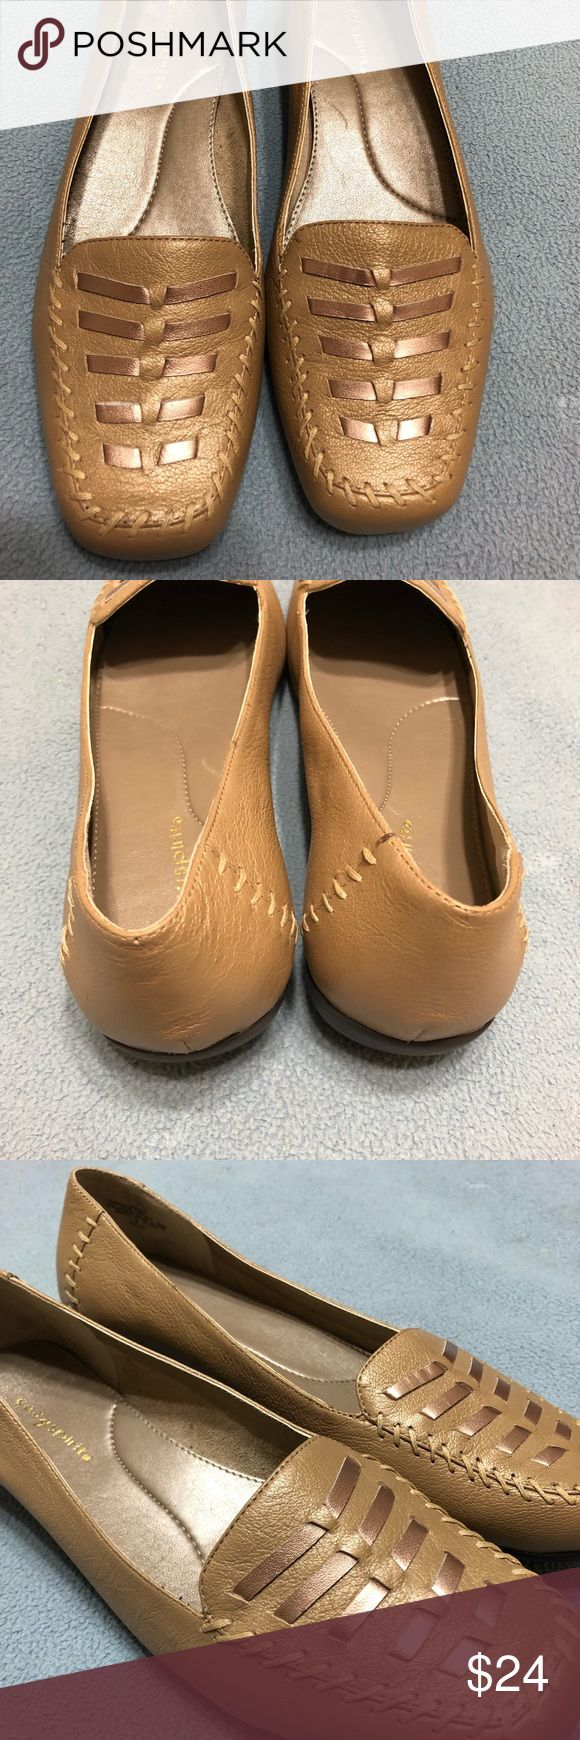 Easy Spirit Champagne Shoes Comfort and Champagne  Easy Spirit Flat dress or casual shoe   Worn / Good Condition Shoes